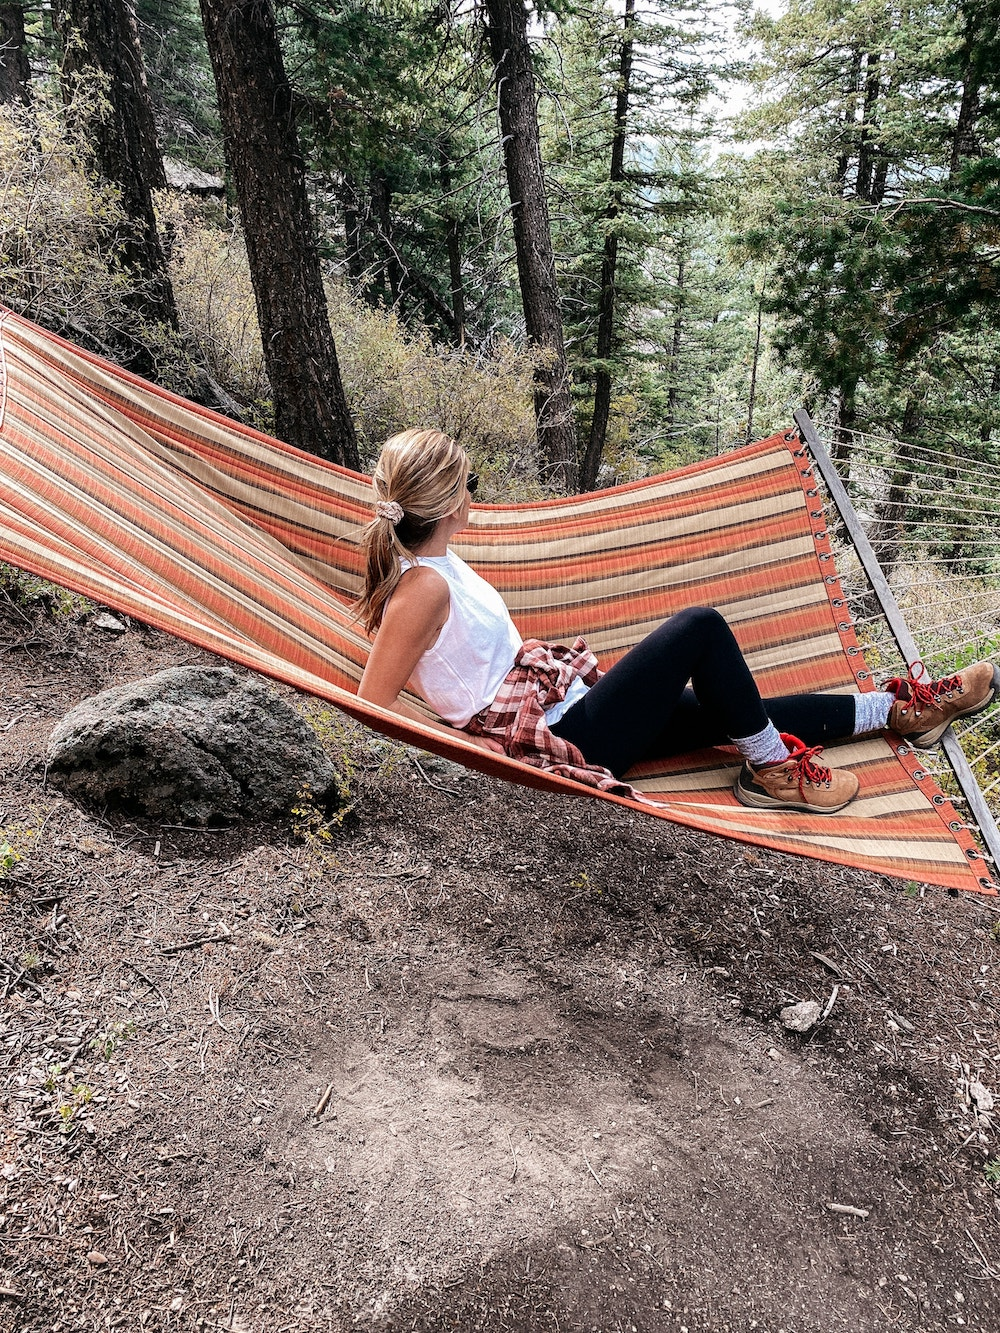 brighton butler at qroadmoor cloud camp sitting on hammock